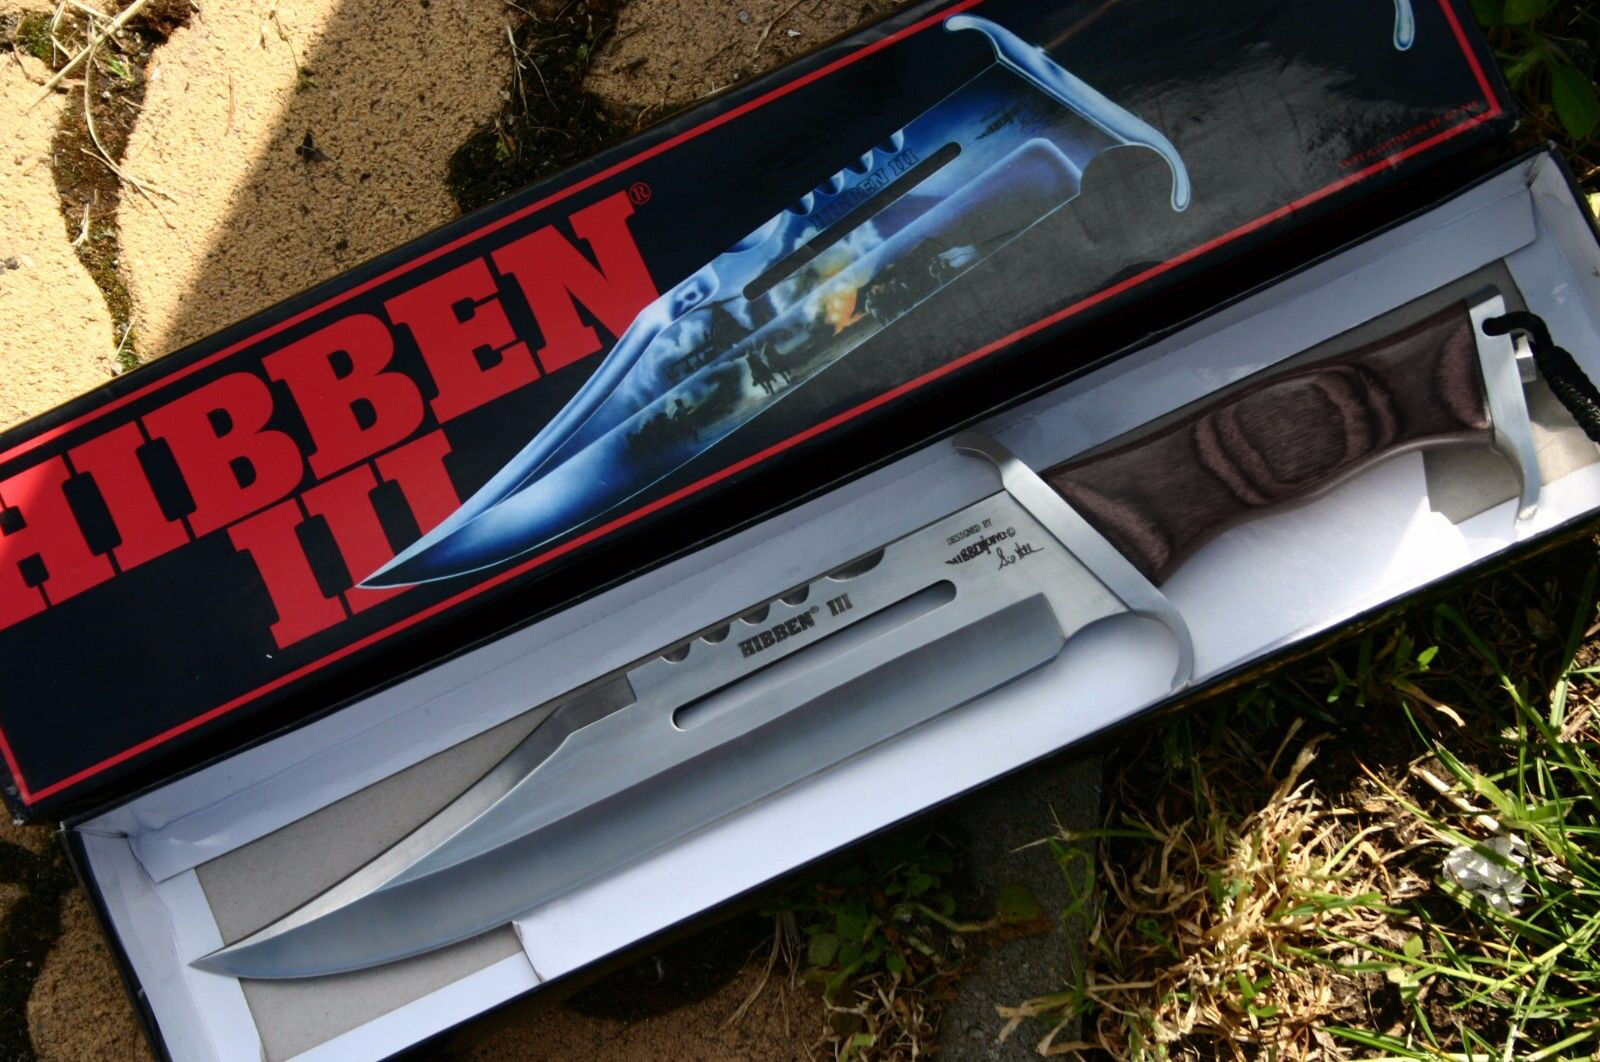 Rambo 3 HIBBEN Knife Messer United Cutery Limited Edition Bowie